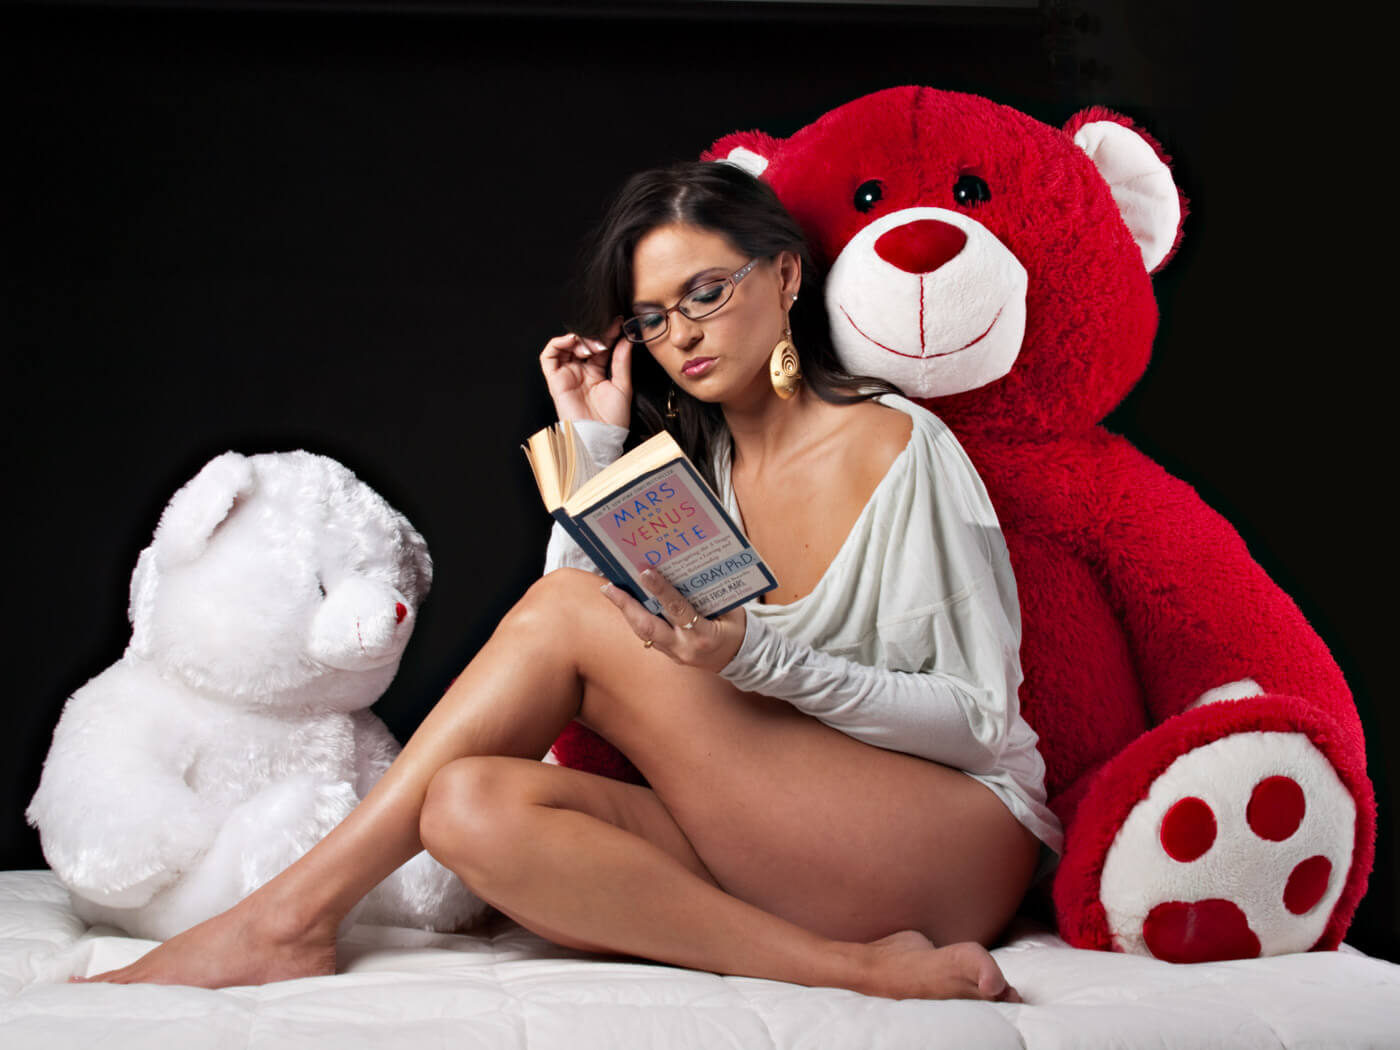 Bedtime Stories with friends